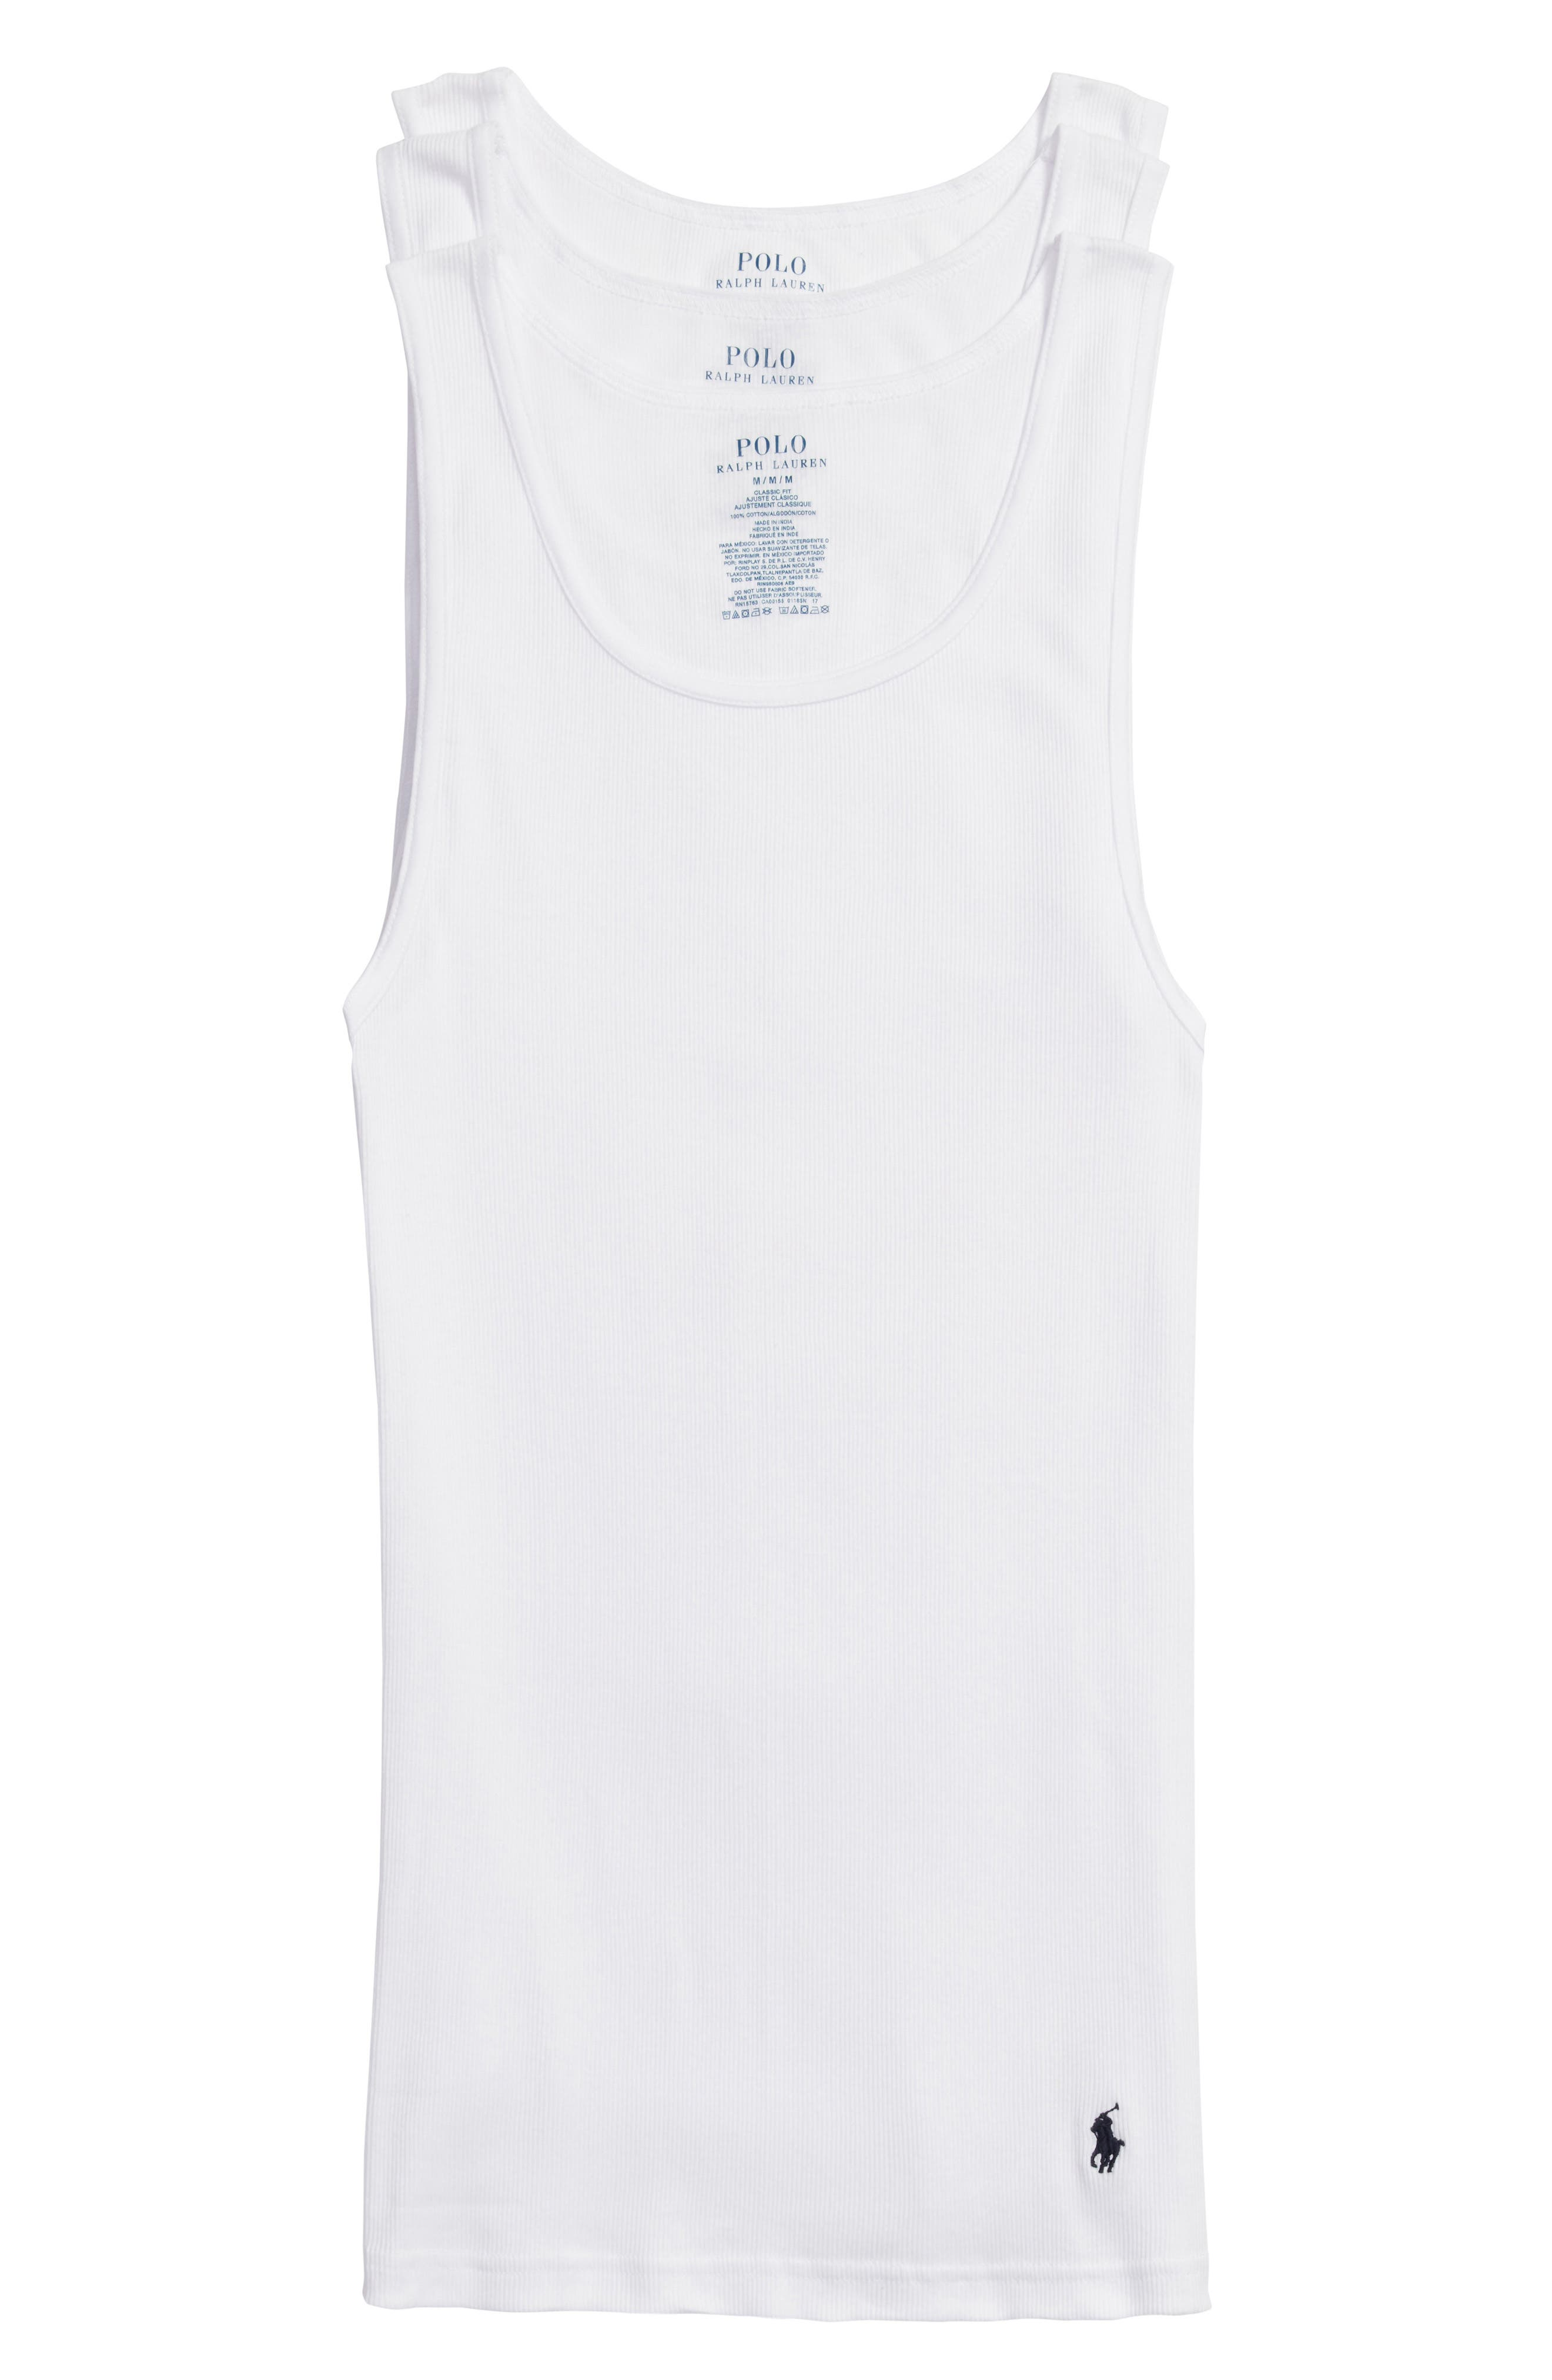 Polo Ralph Lauren 3-Pack Classic Tanks,                             Main thumbnail 1, color,                             WHITE